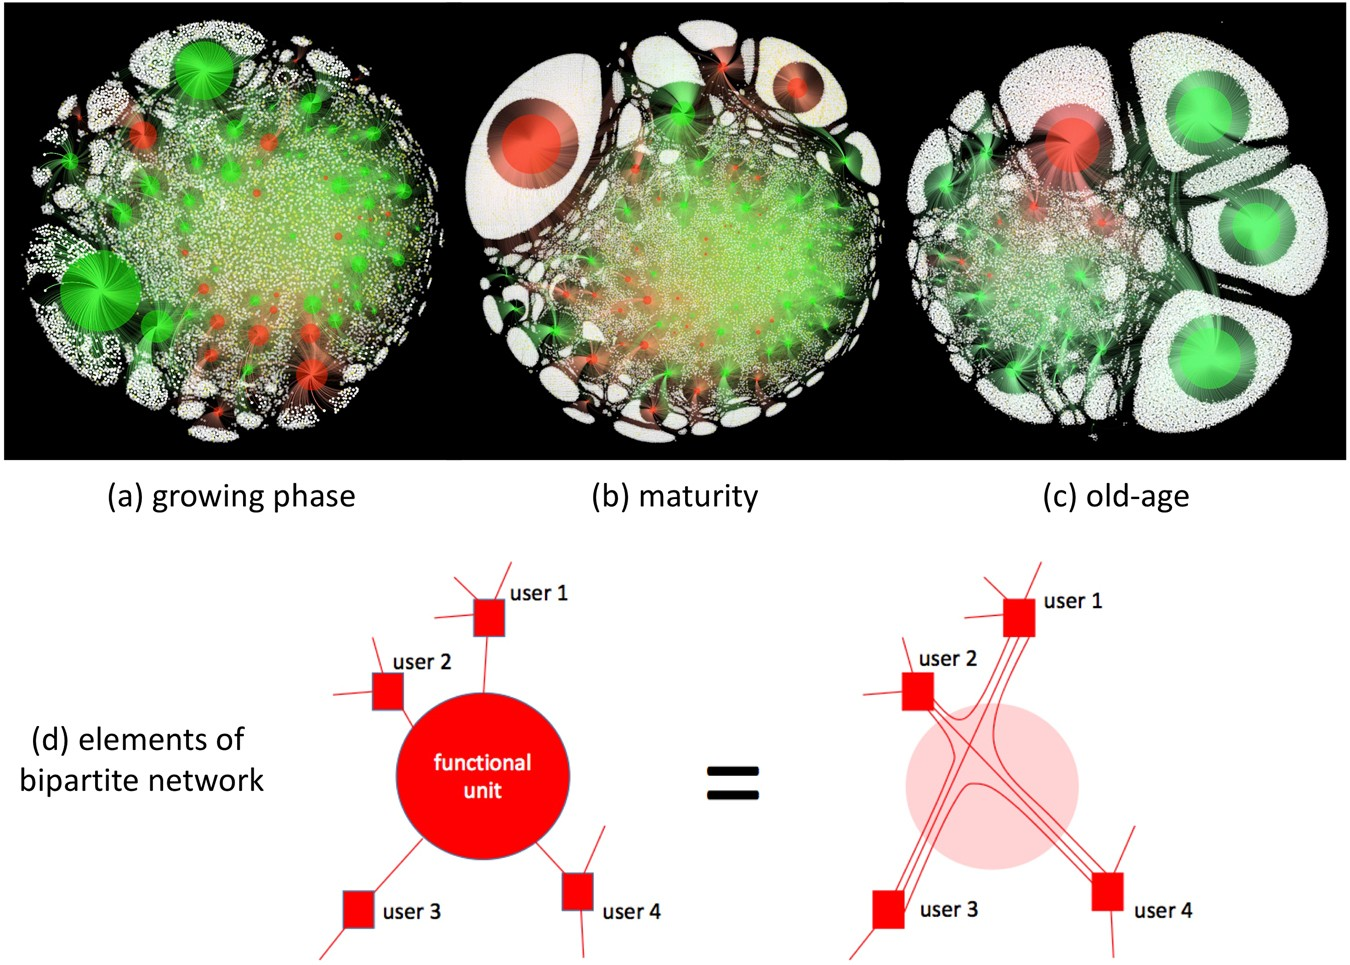 Multiscale Dynamical Network Mechanisms Underlying Aging Of An Johnny 5 No Disassemble Advanced Irules Abstract View Online Organism From Birth To Death Scientific Reports